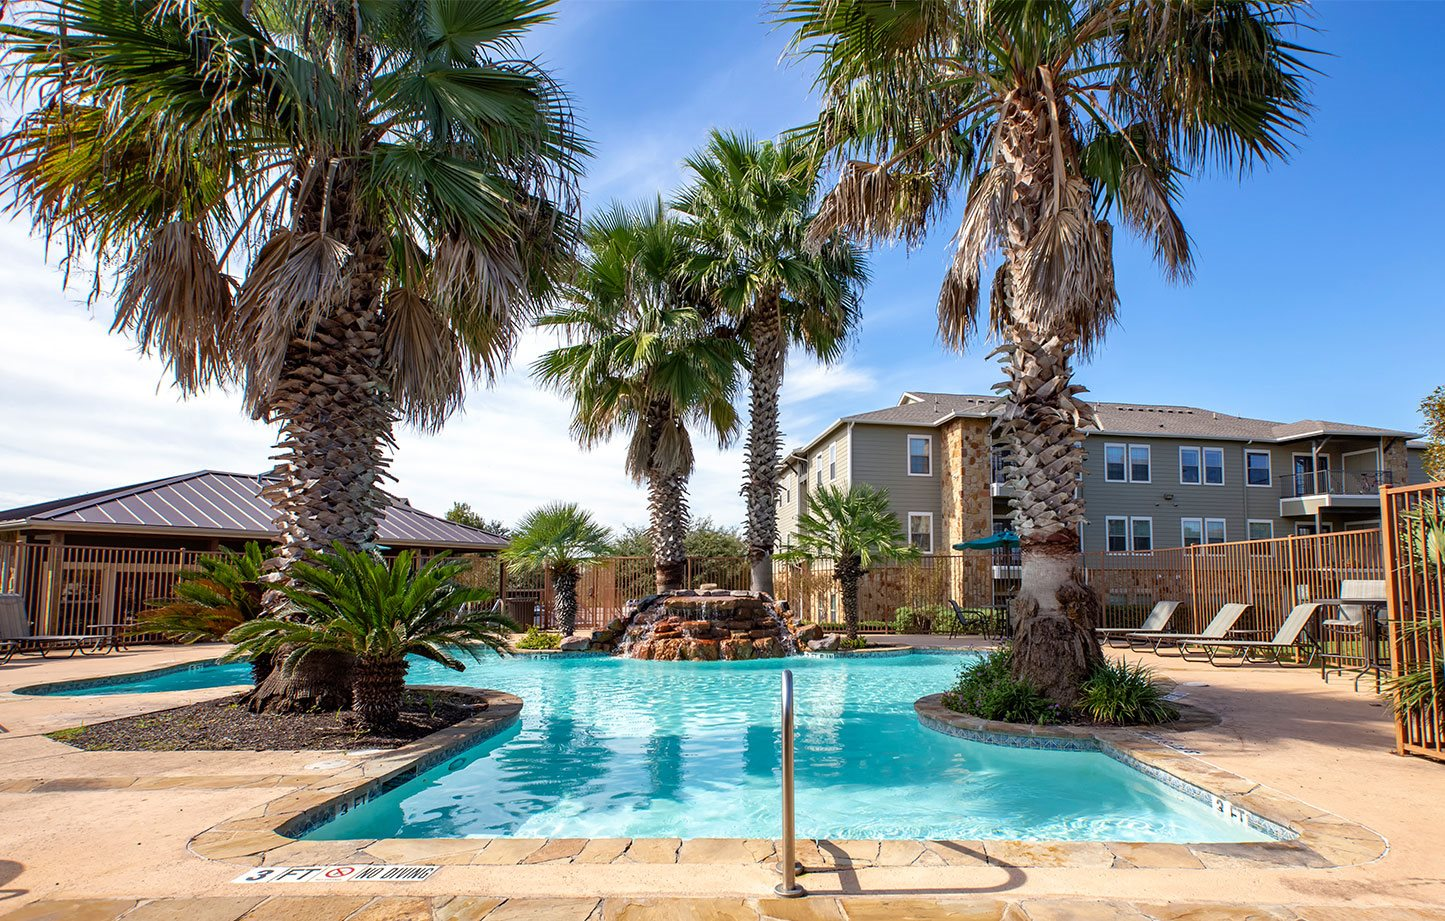 exterior pool with palm trees